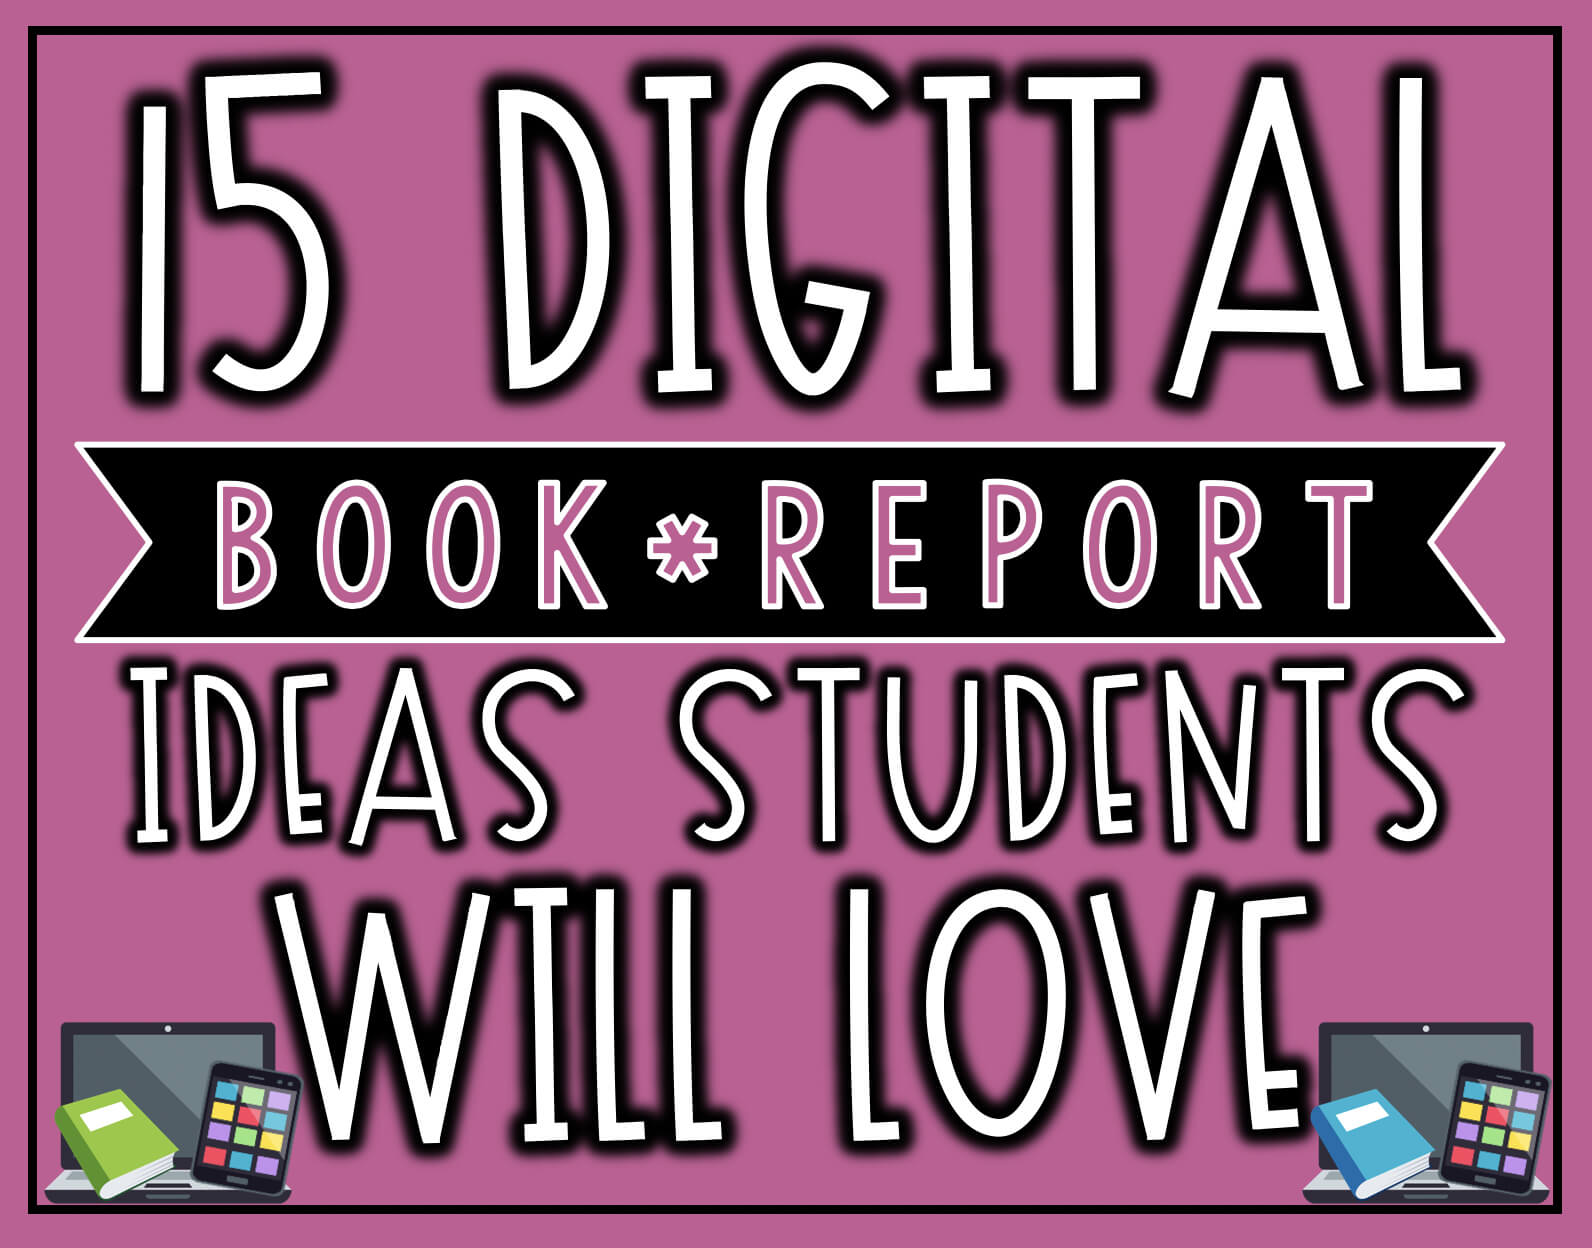 15 Digital Book Report Ideas Your Students Will Love   The Inside Book Report Template In Spanish